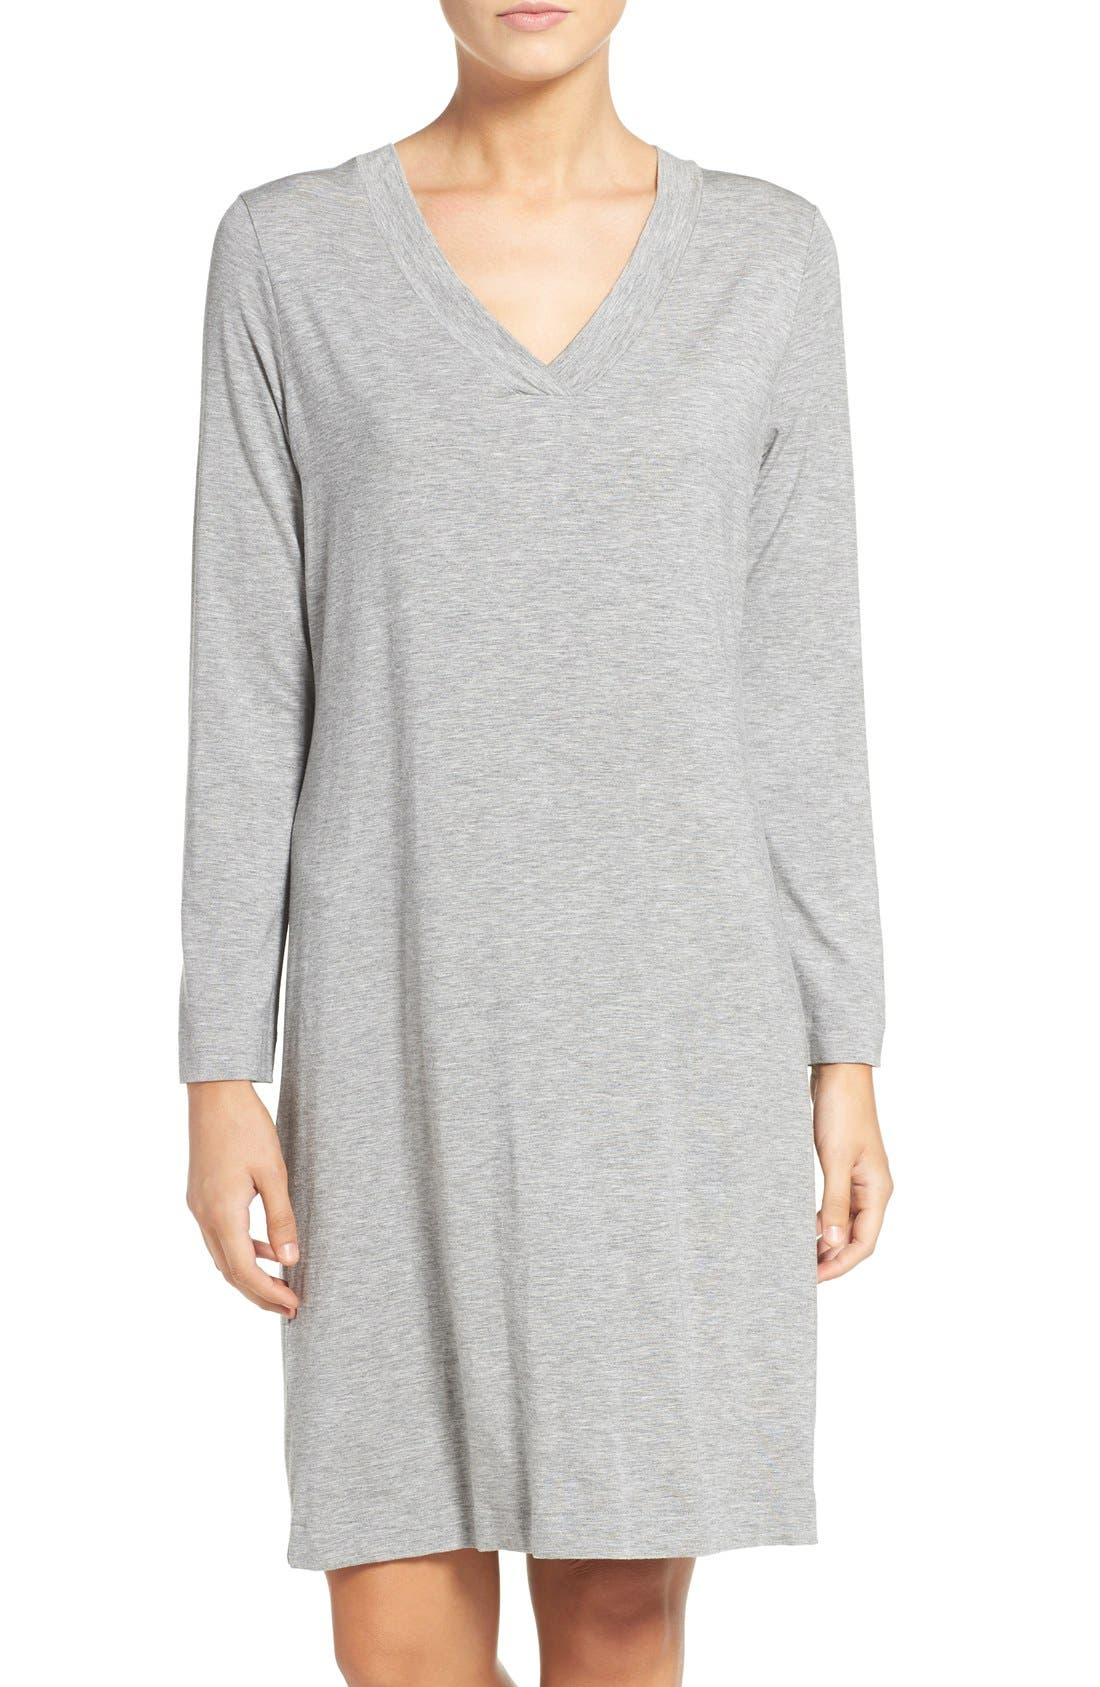 Hanro Long Sleeve Knit Nightgown